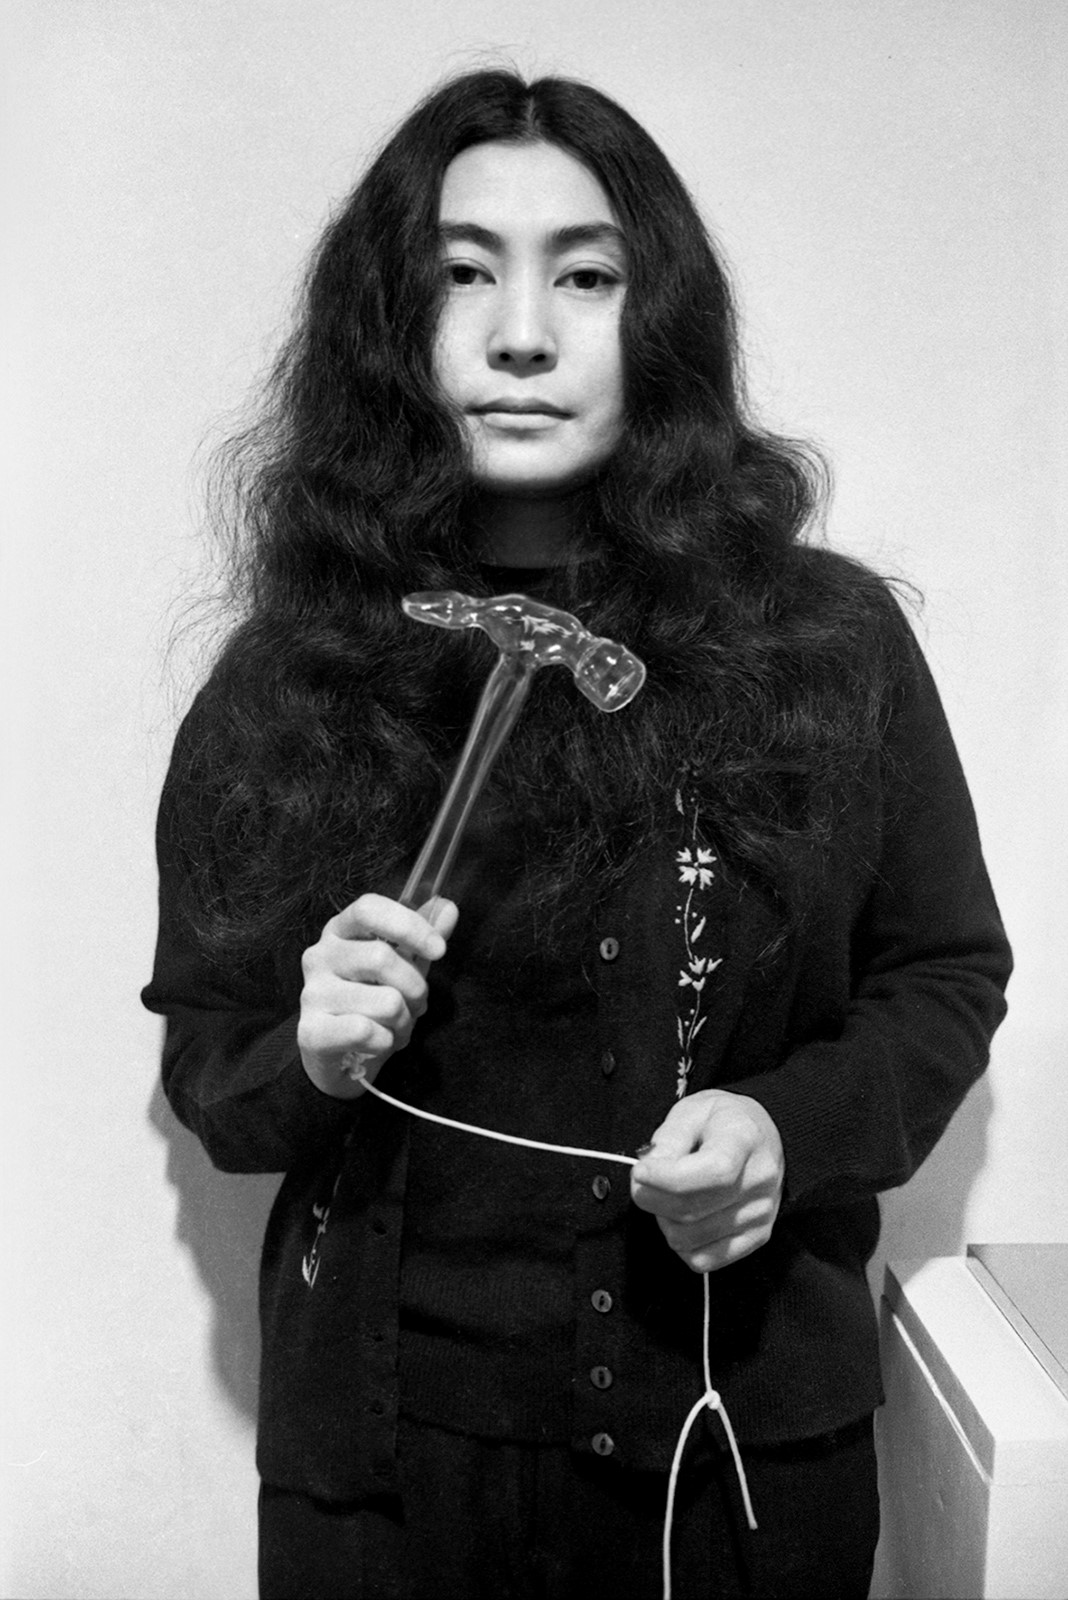 Clay Perry, Yoko Ono (with glass hammer), 1967/2021, Courtesy of England & Co